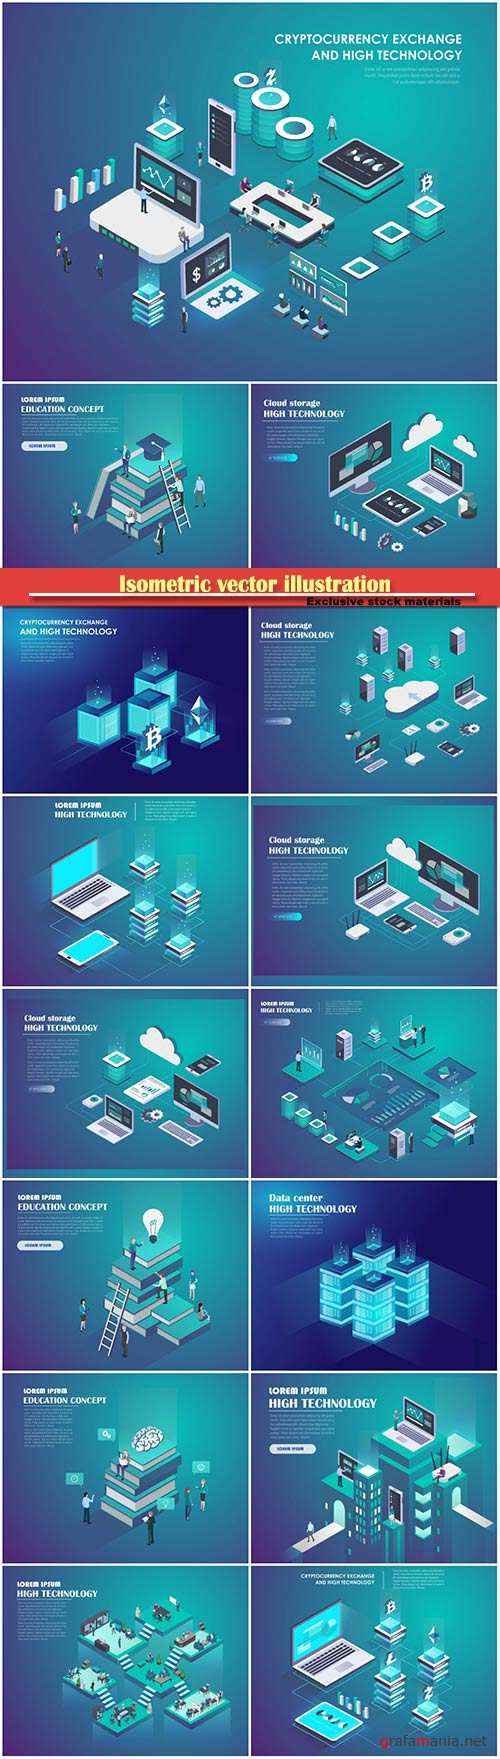 Isometric vector illustration, technology concept, header for website